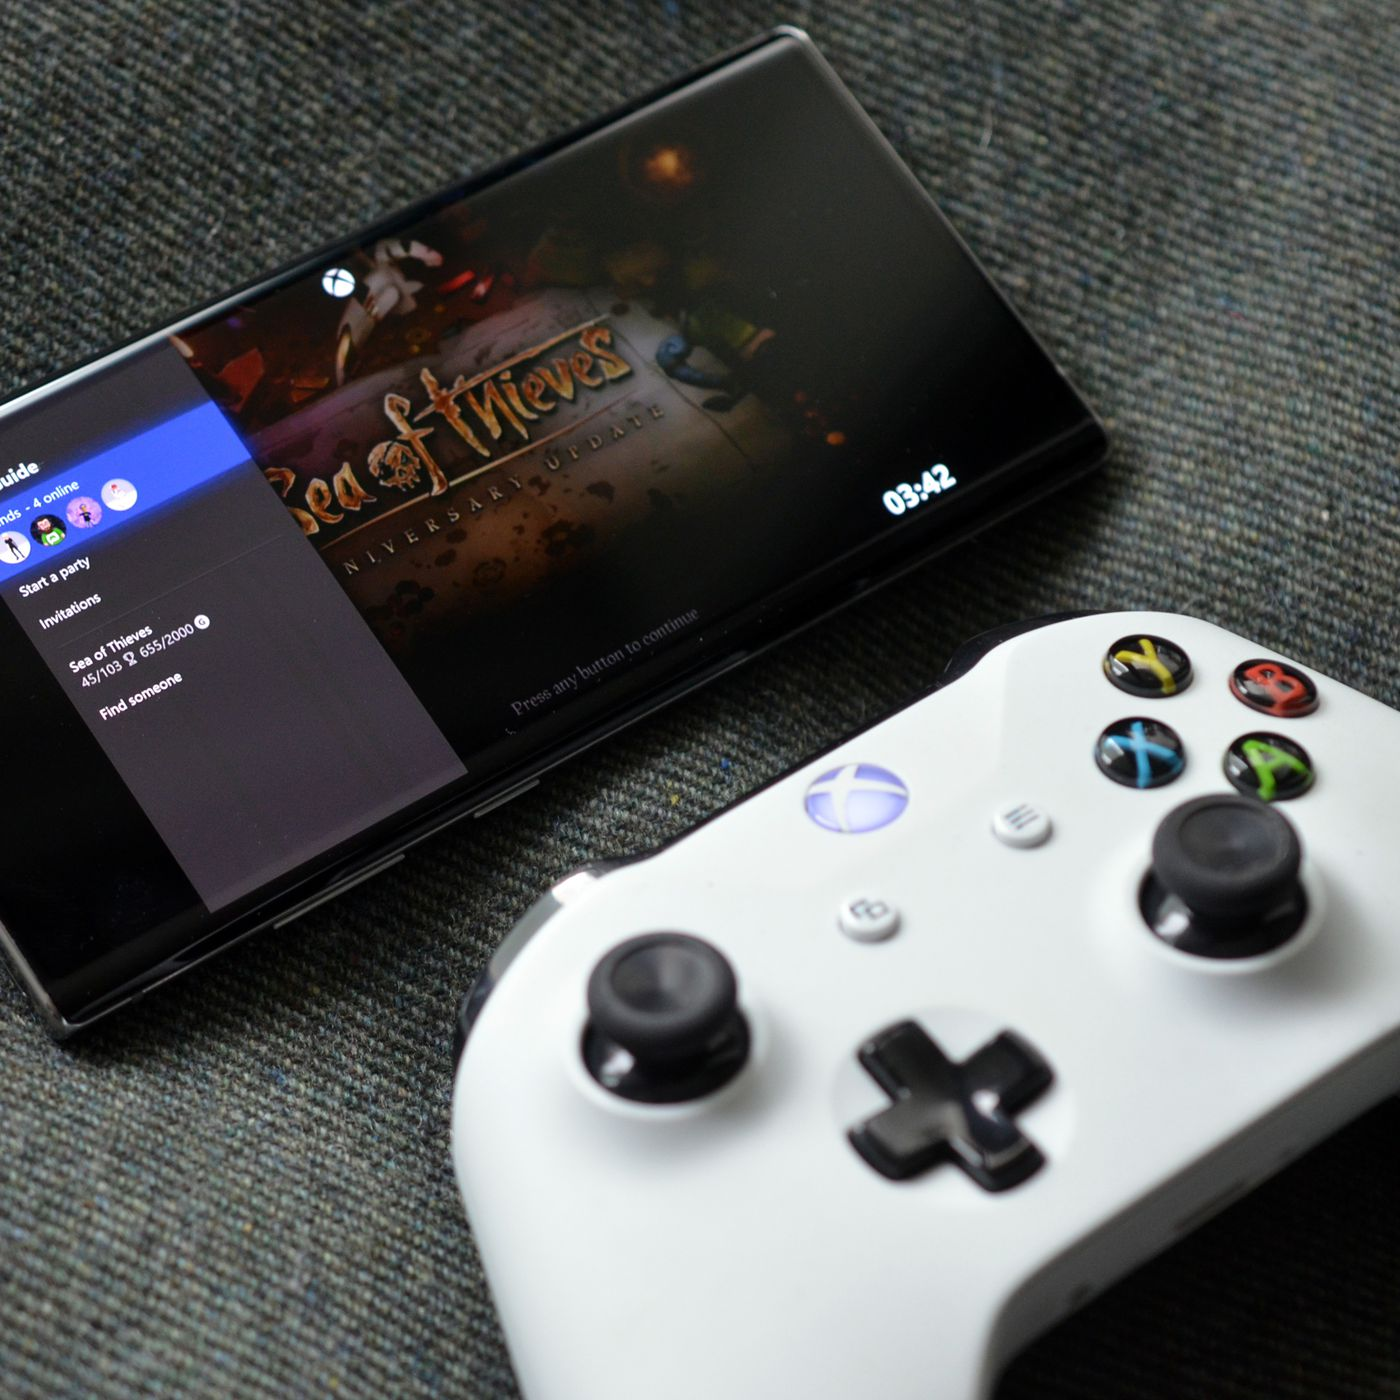 theverge.com - Tom Warren - Hands-on with Microsoft's xCloud game streaming service